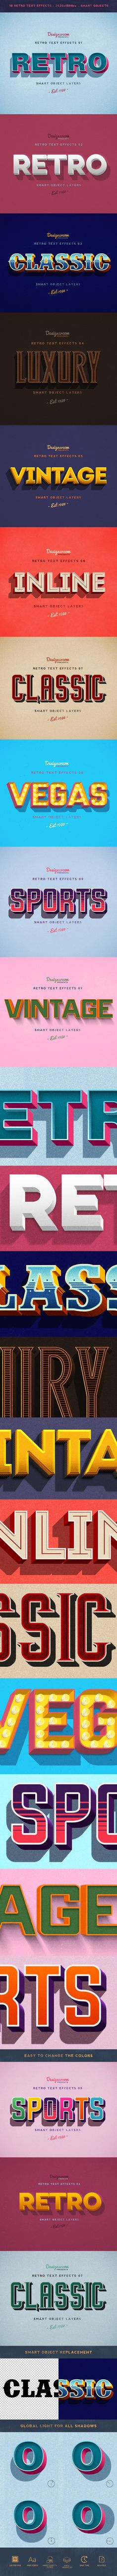 Retro Text Effects 01 - #Text Effects #Actions Download here: https://graphicriver.net/item/retro-text-effects-01/19526851?ref=alena994